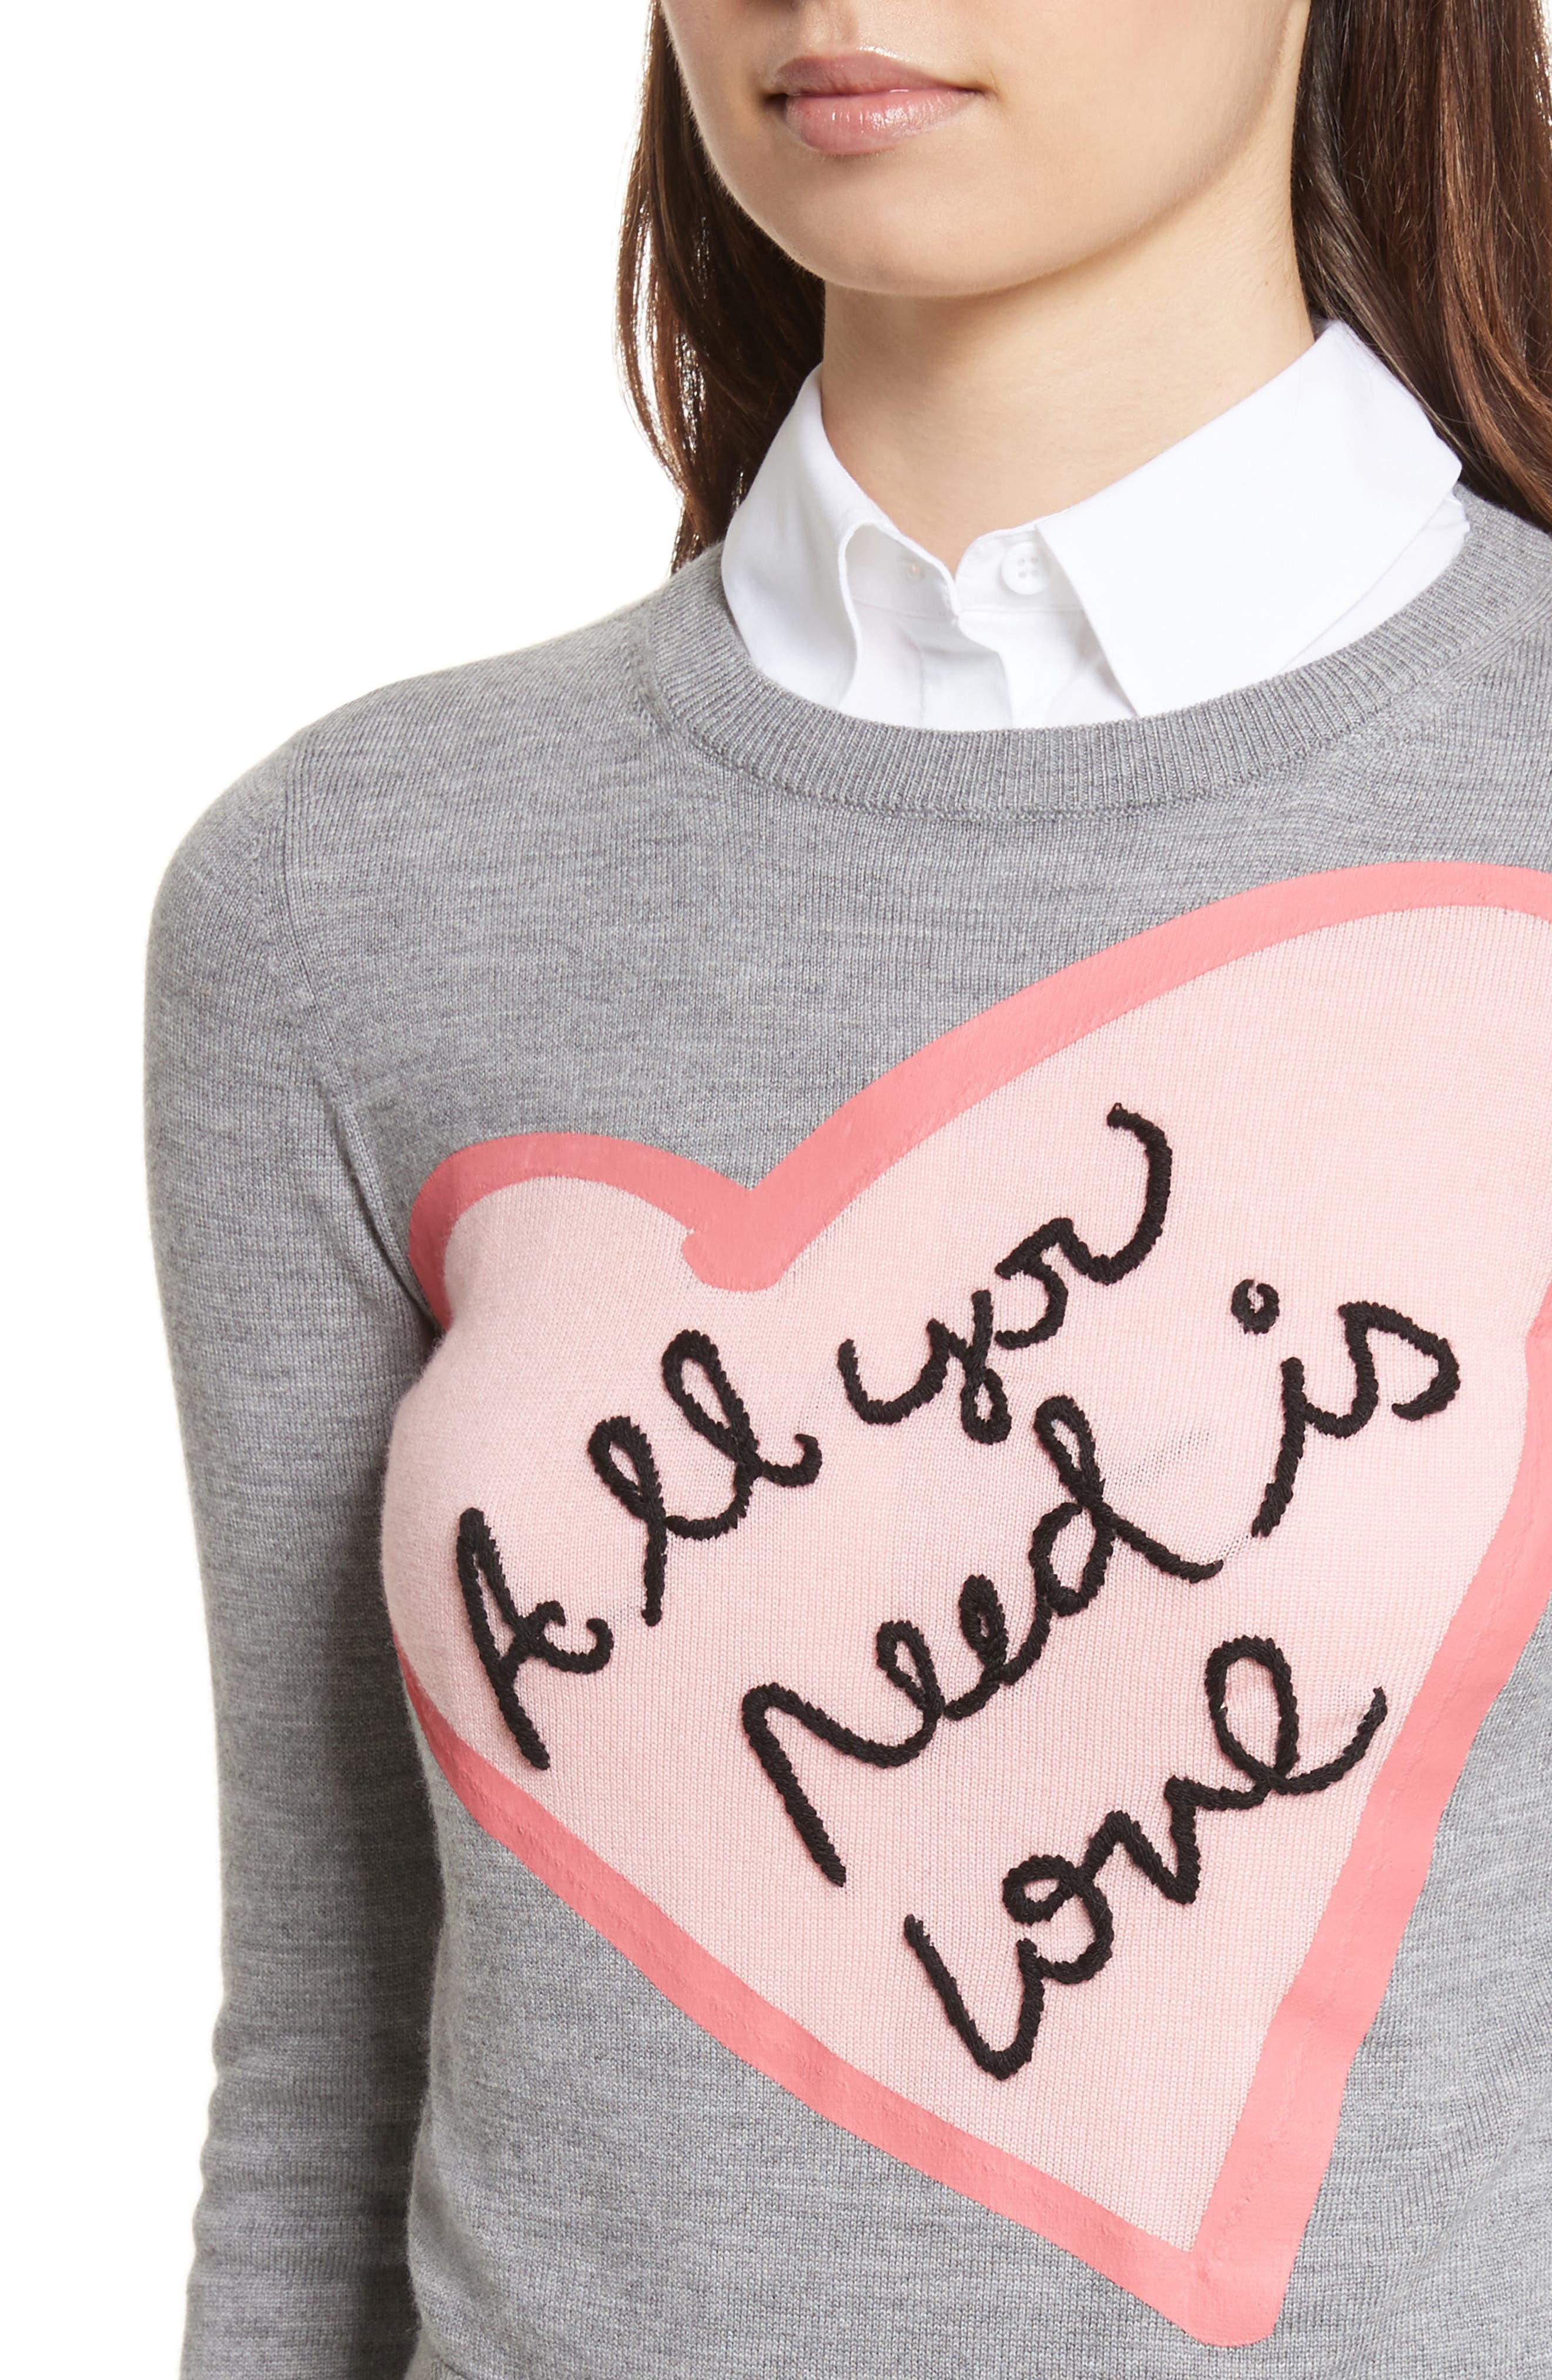 AO x The Beatles Nikia All You Need is Love Pullover,                             Alternate thumbnail 4, color,                             077